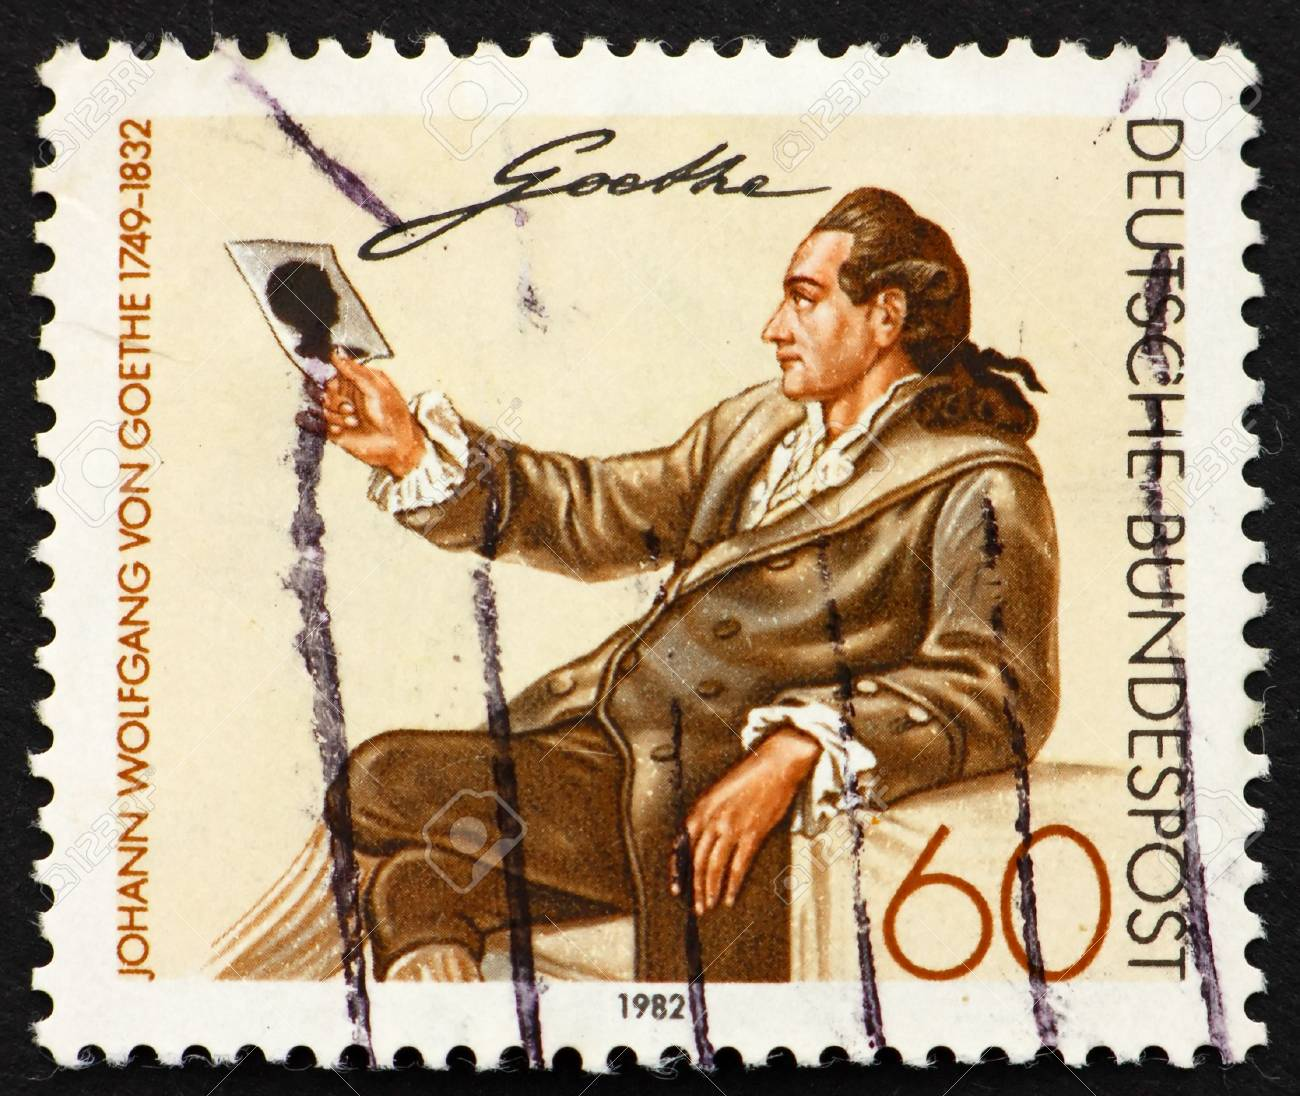 GERMANY - CIRCA 1982: a stamp printed in the Germany shows Johann Wolfgang von Goethe, Writer and Natural Philosopher, circa 1982 Stock Photo - 11278255